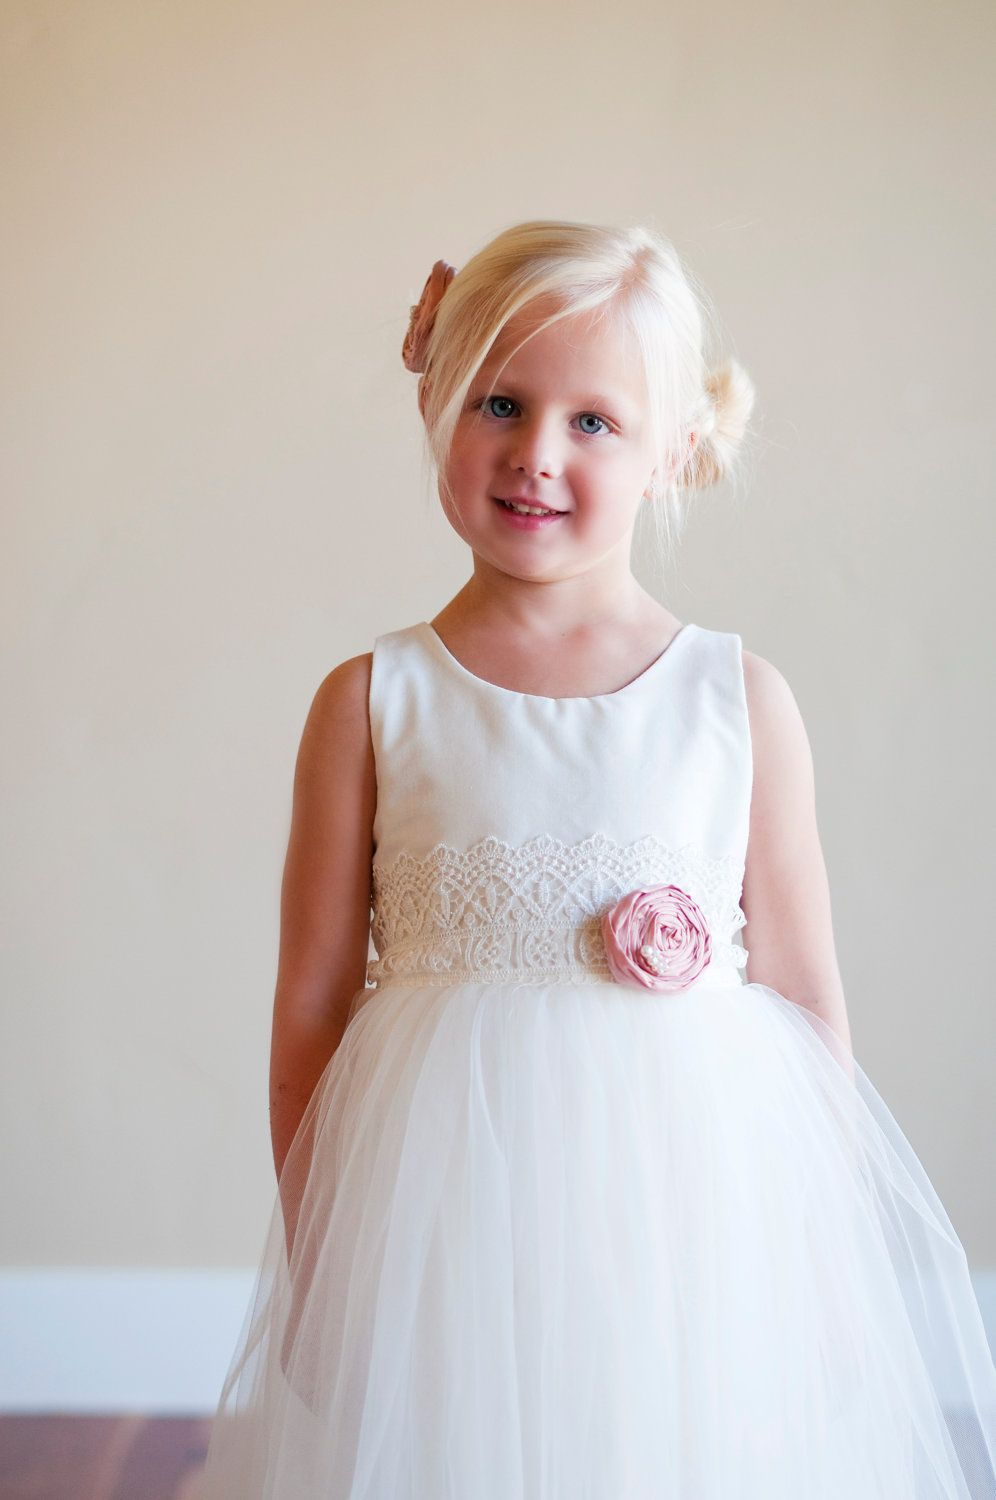 Flower Girl Dresses In Ivory Or White With Lace Sash Lace Flower